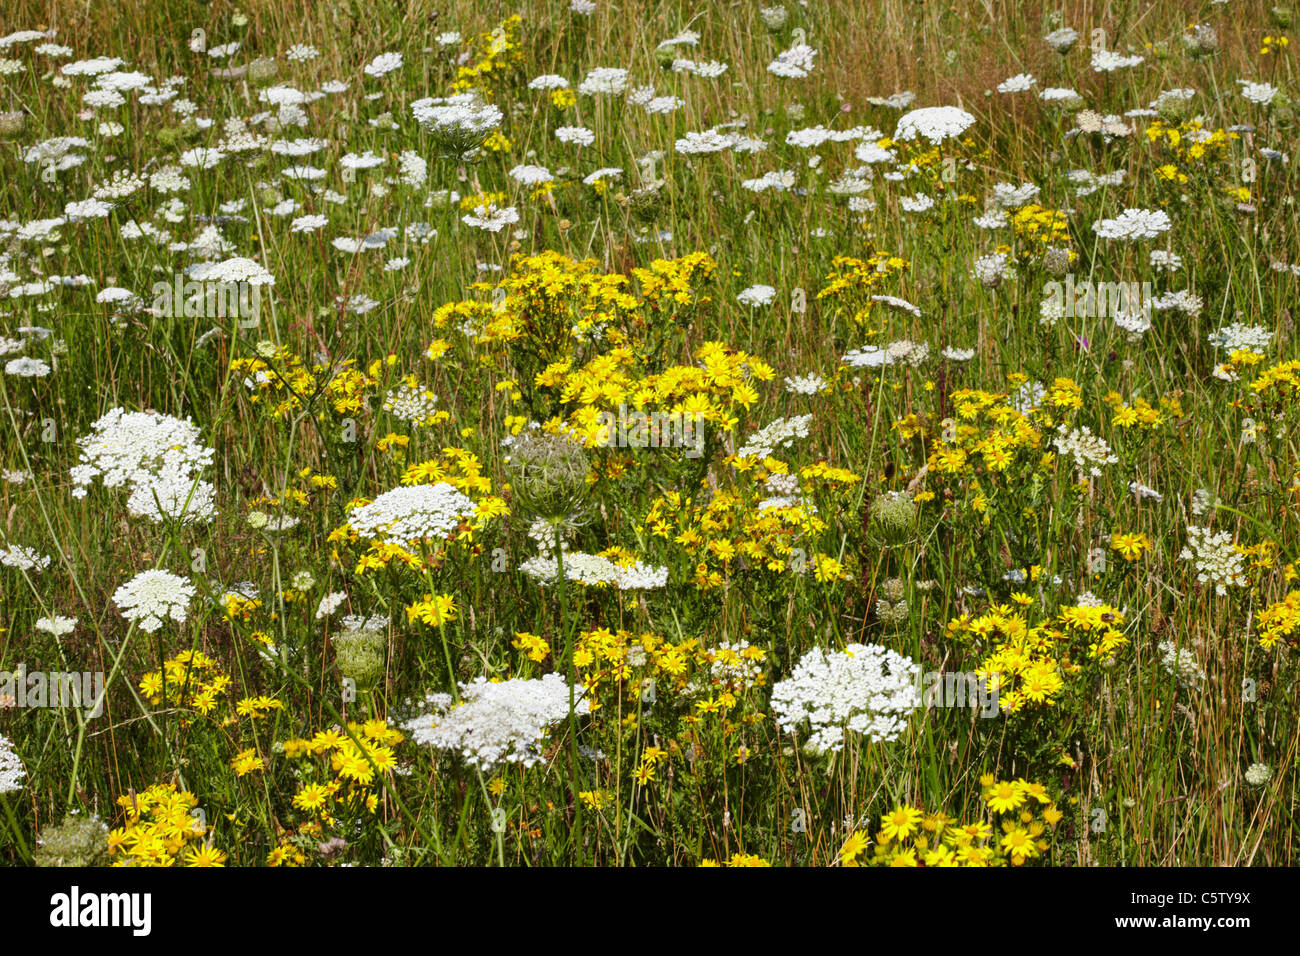 Wild flowers on Hurst Meadows, West Molesey, Surrey, England. - Stock Image